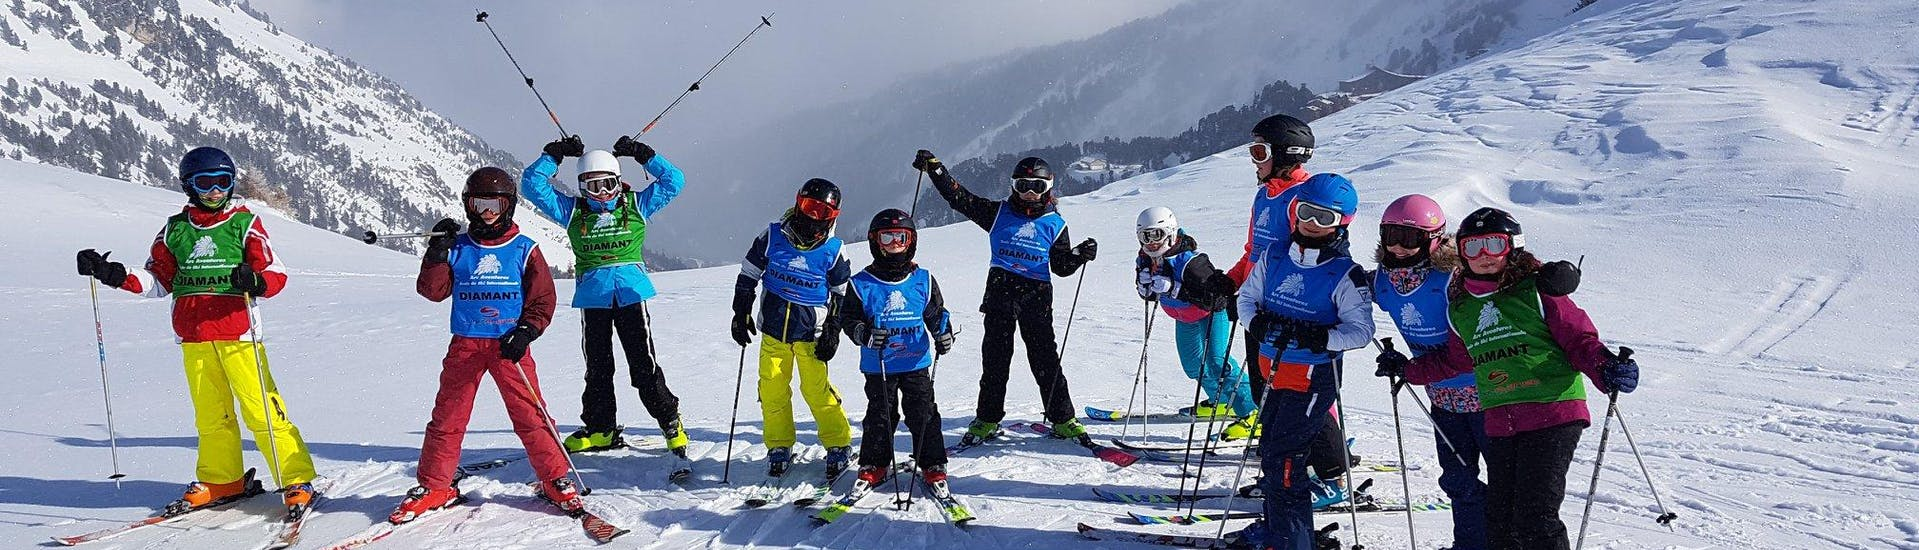 ski-lessons-for-kids-5-12-years-all-levels-arc-1800-hero